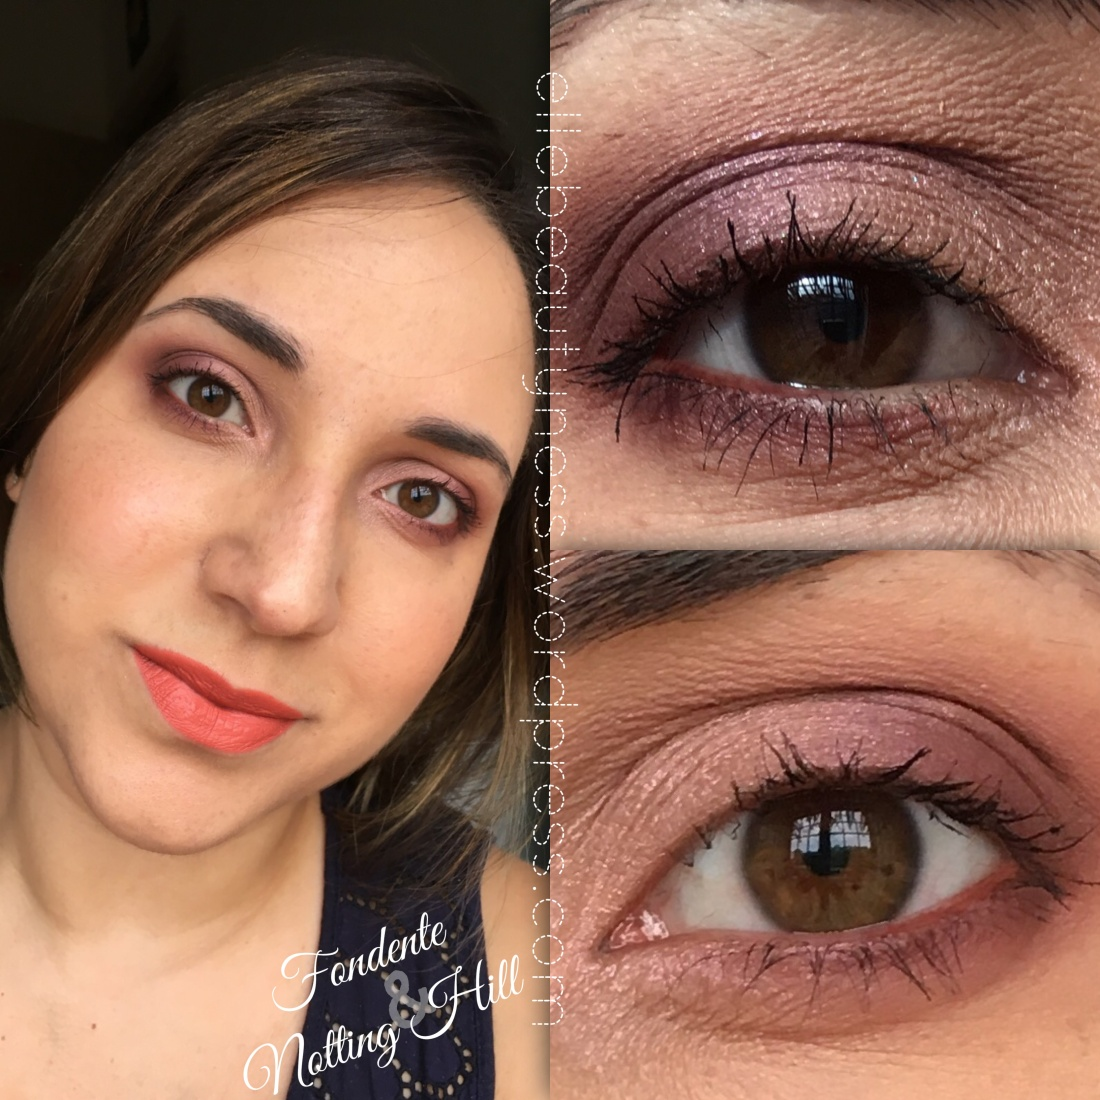 makeup blog elle beautyness closeup eyes eyeshadow ombretti minerali neve cosmetics mineral post days fondente notting hill best shopping pastello trucco swatch review.JPG